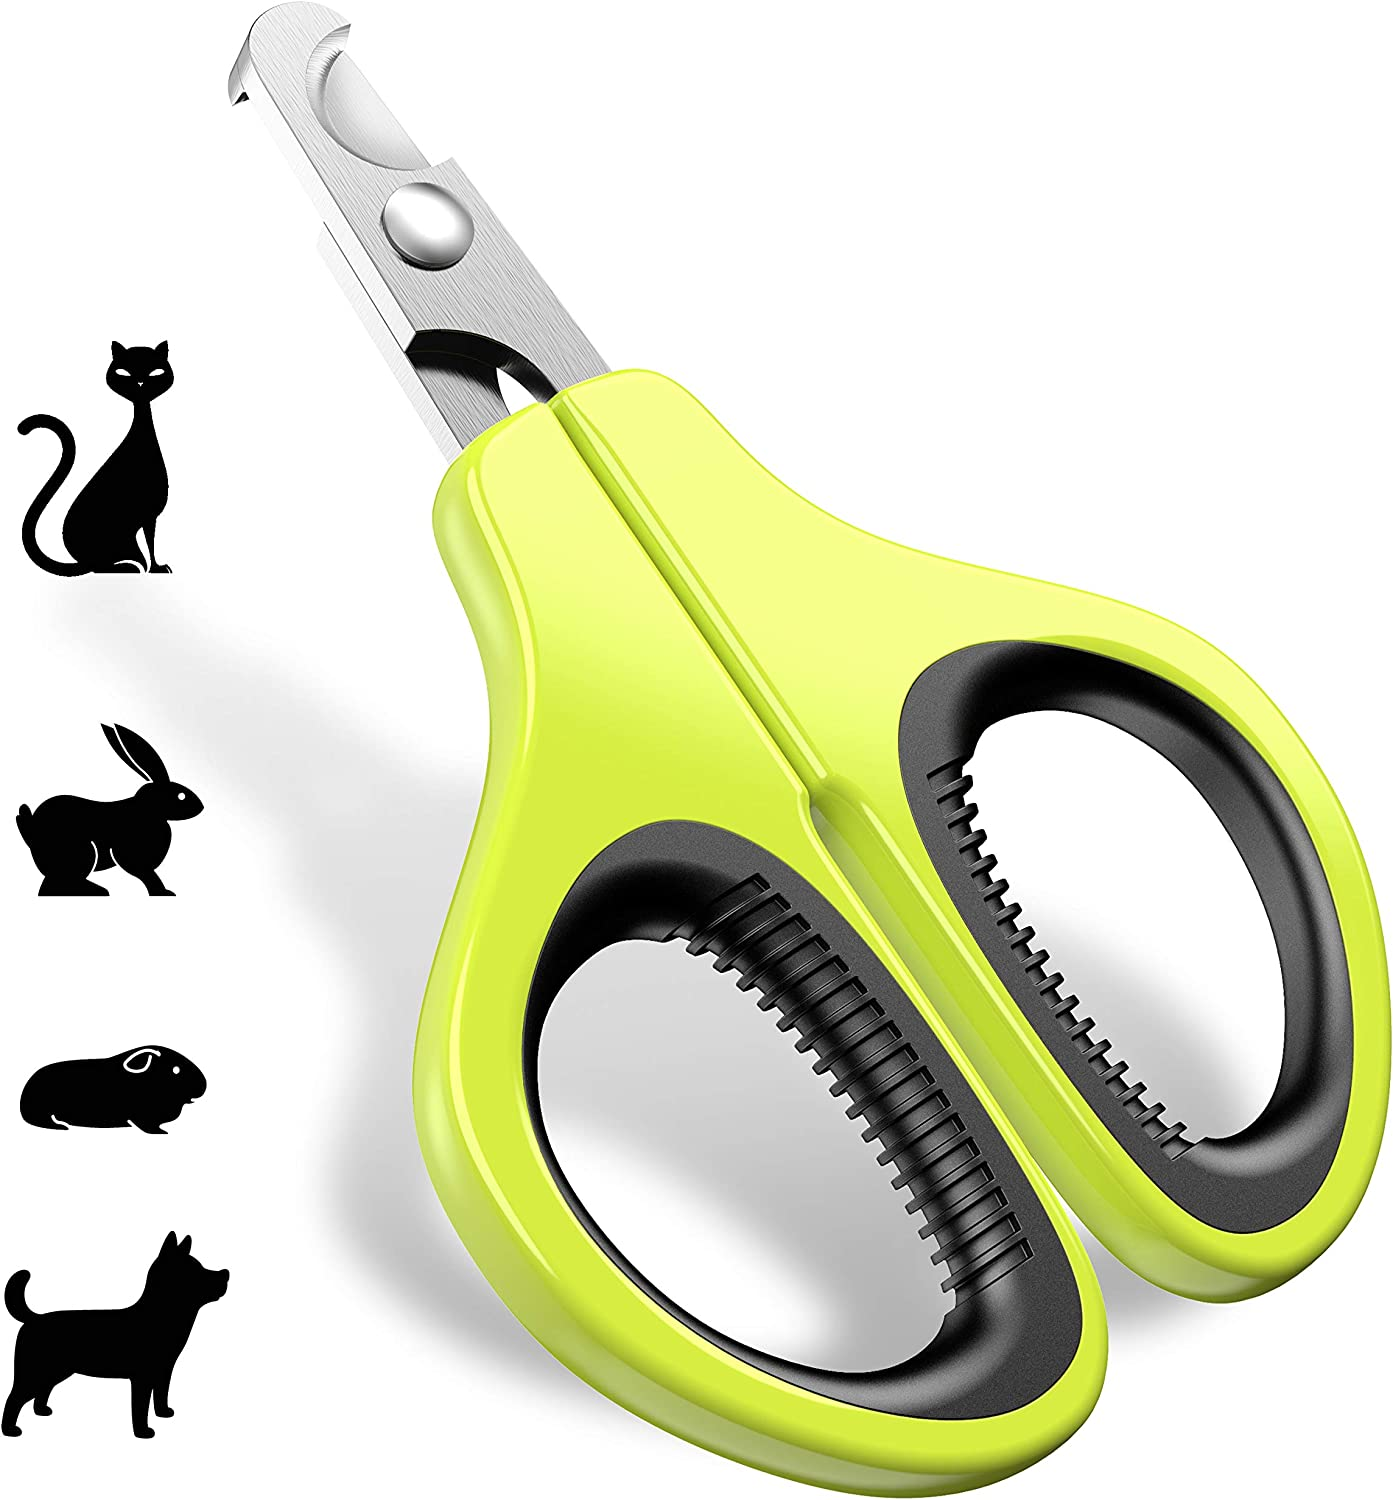 JOFUYU Updated 2019 Version Cat Nail Clippers and Trimmer - Professional Pet Nail Clippers and Claw Trimmer - Best Cat Claw Clippers for Rabbit Puppy Kitten...